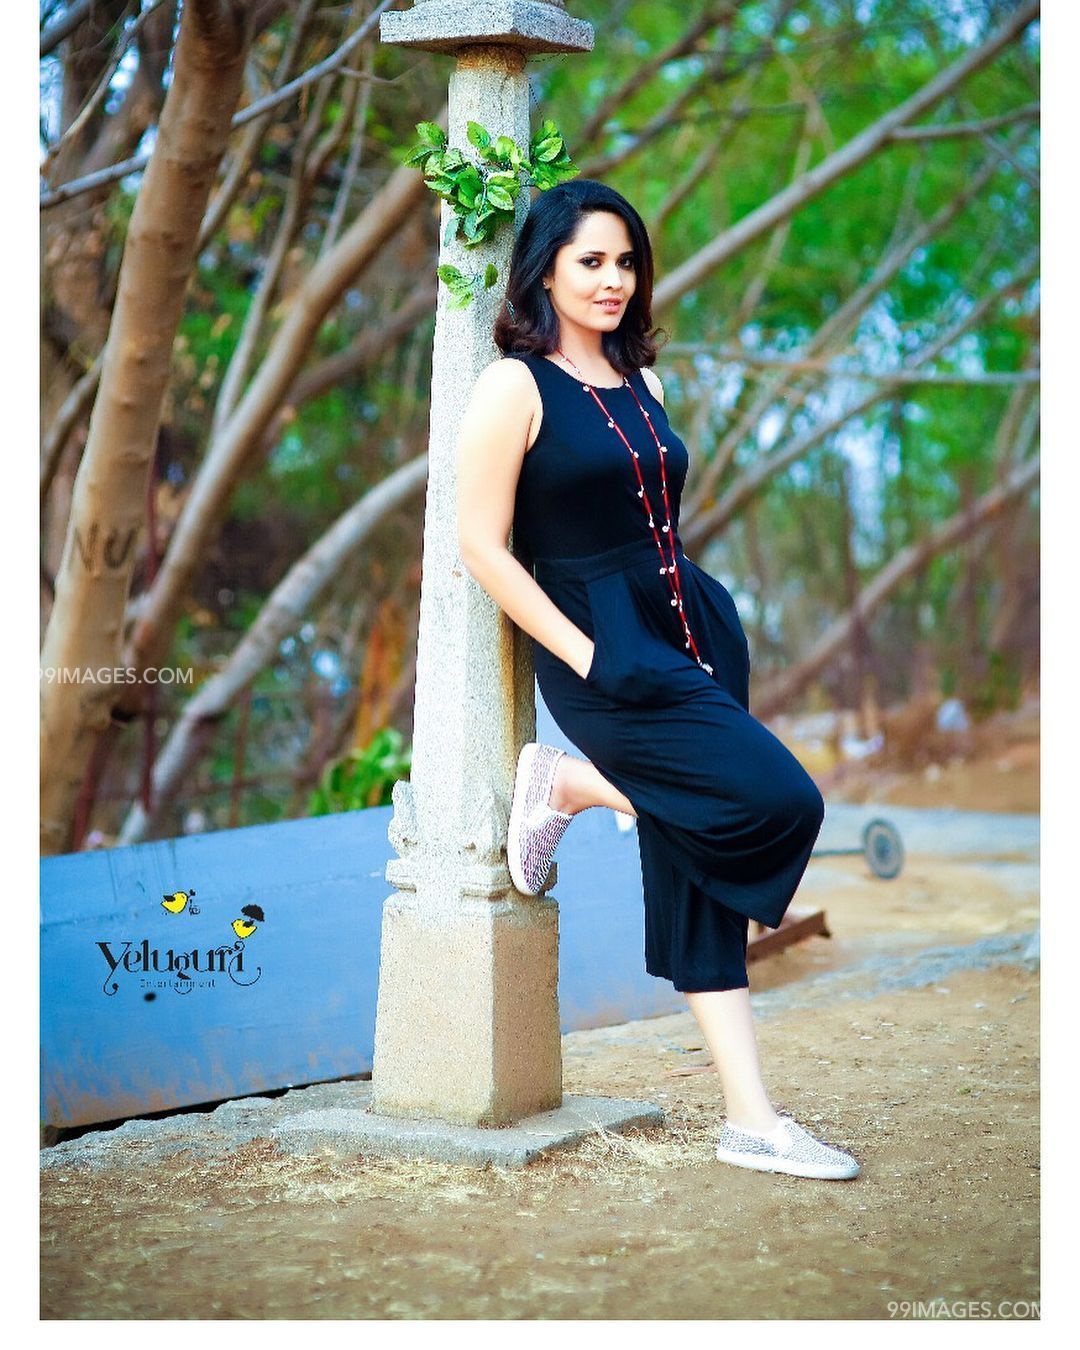 Anasuya Bharadwaj Beautiful HD Photos & Mobile Wallpapers HD (Android/iPhone) (1080p) - anasuya bharadwaj,actress,television actress,tollywood,hd images